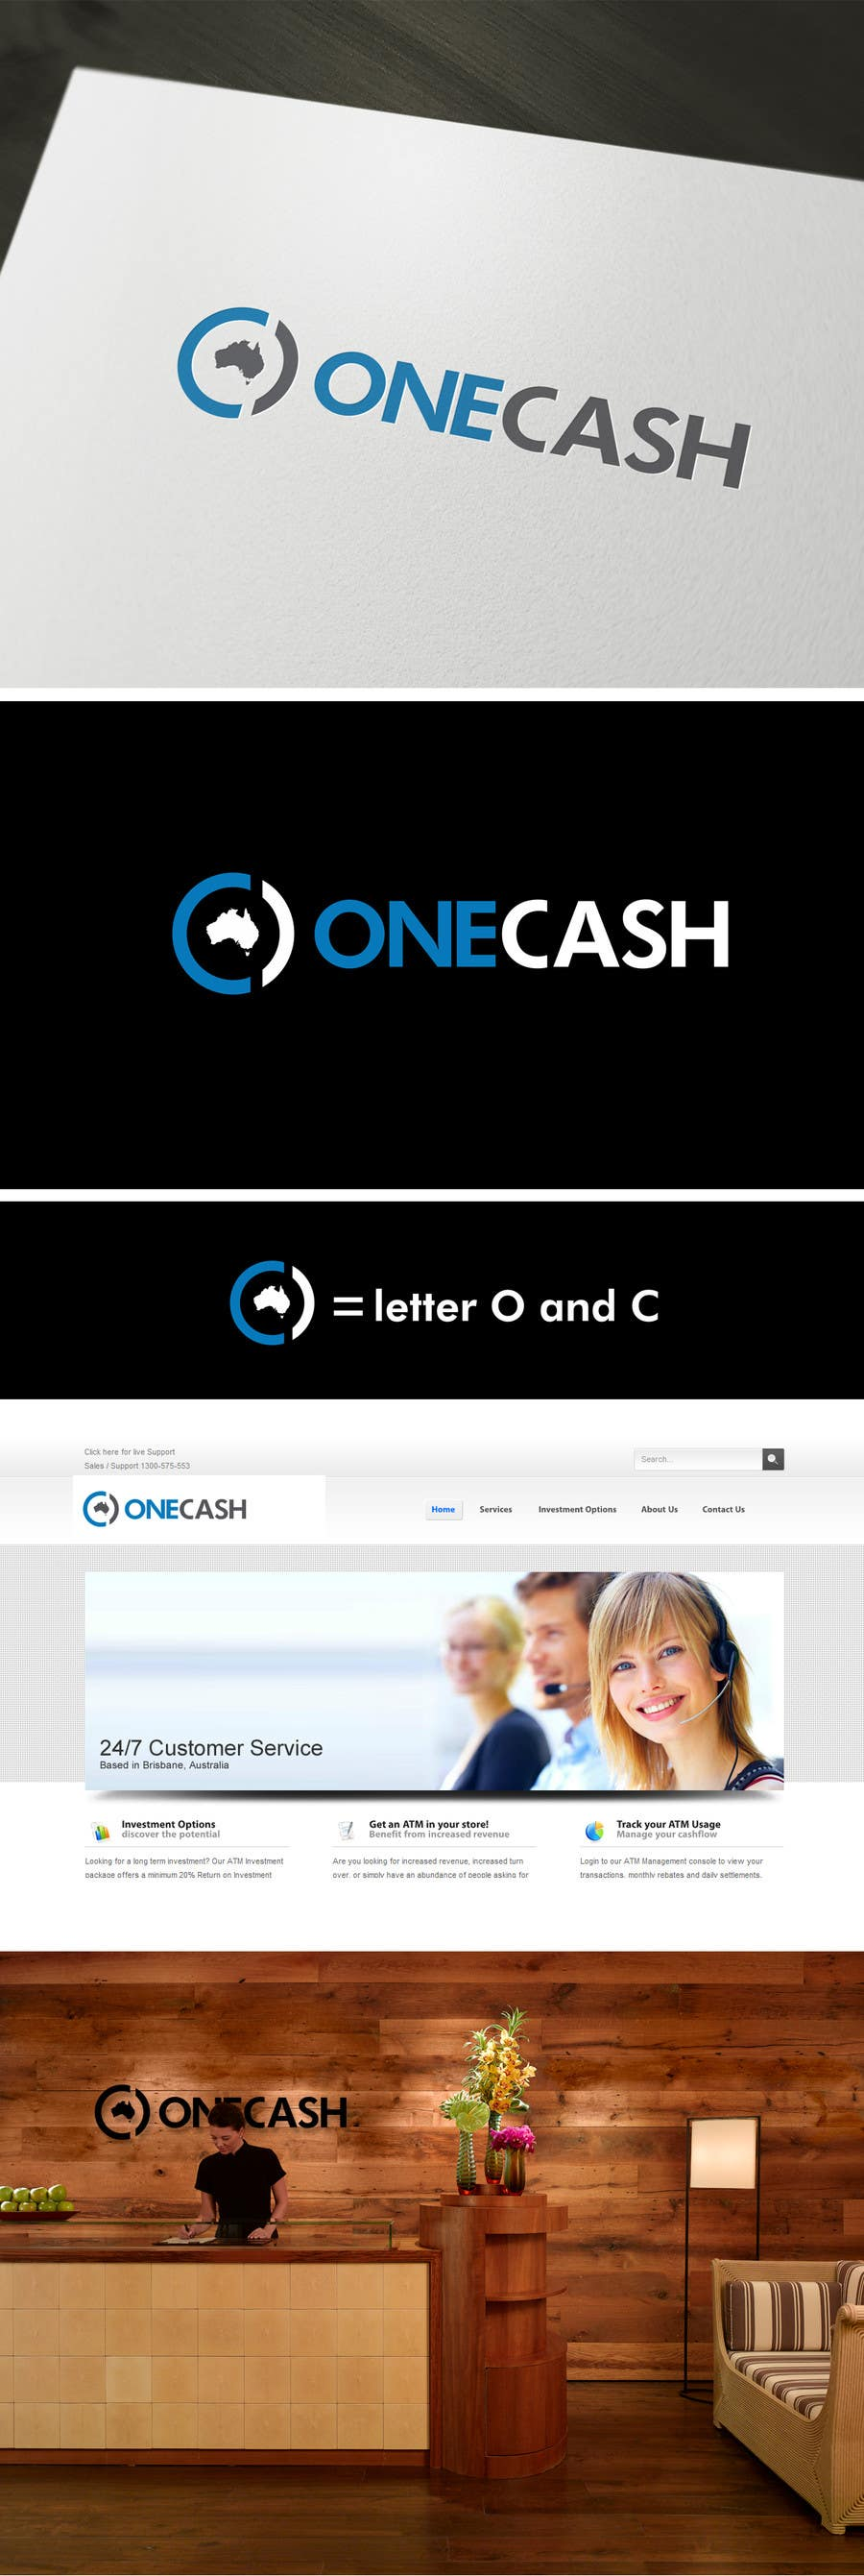 Contest Entry #16 for Logo Design for ONECASH LIMITED (ONE CASH)